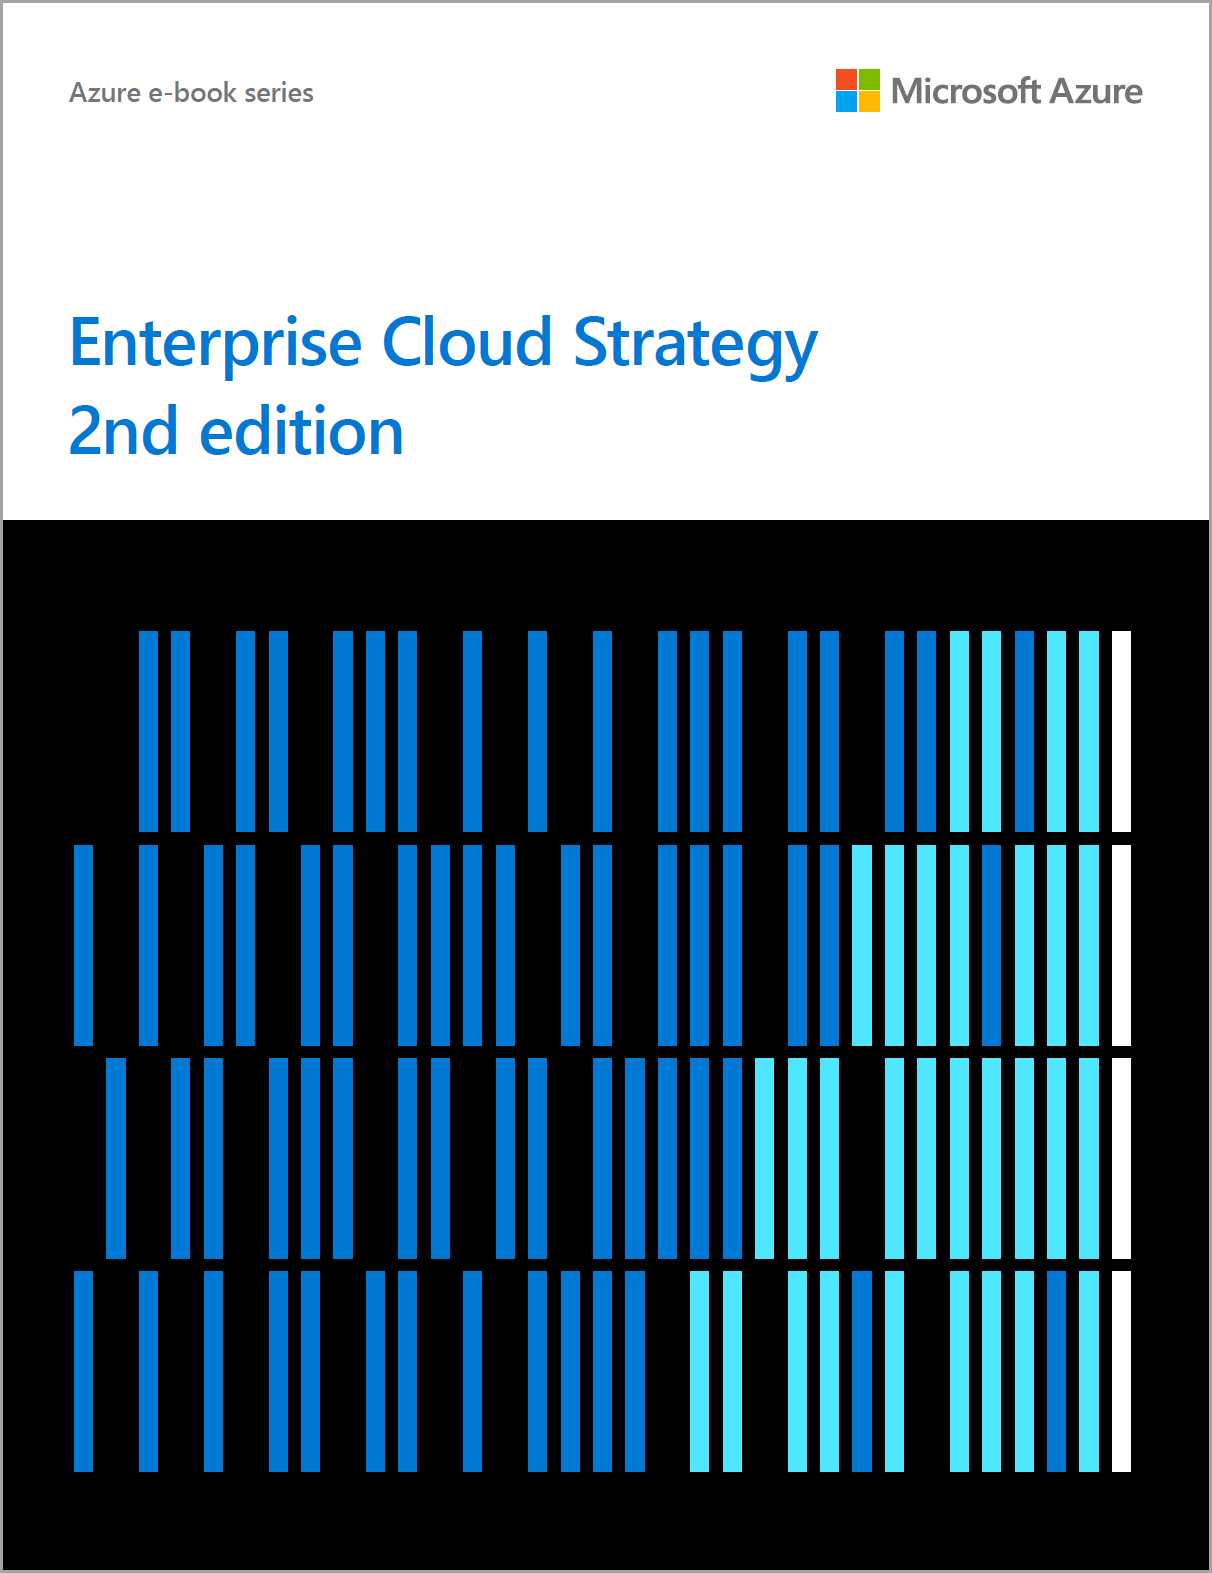 Enterprise cloud strategy e book microsoft azure as well as specific guidance on topics like prioritizing app migration working with stakeholders and cloud architectural blueprints malvernweather Images